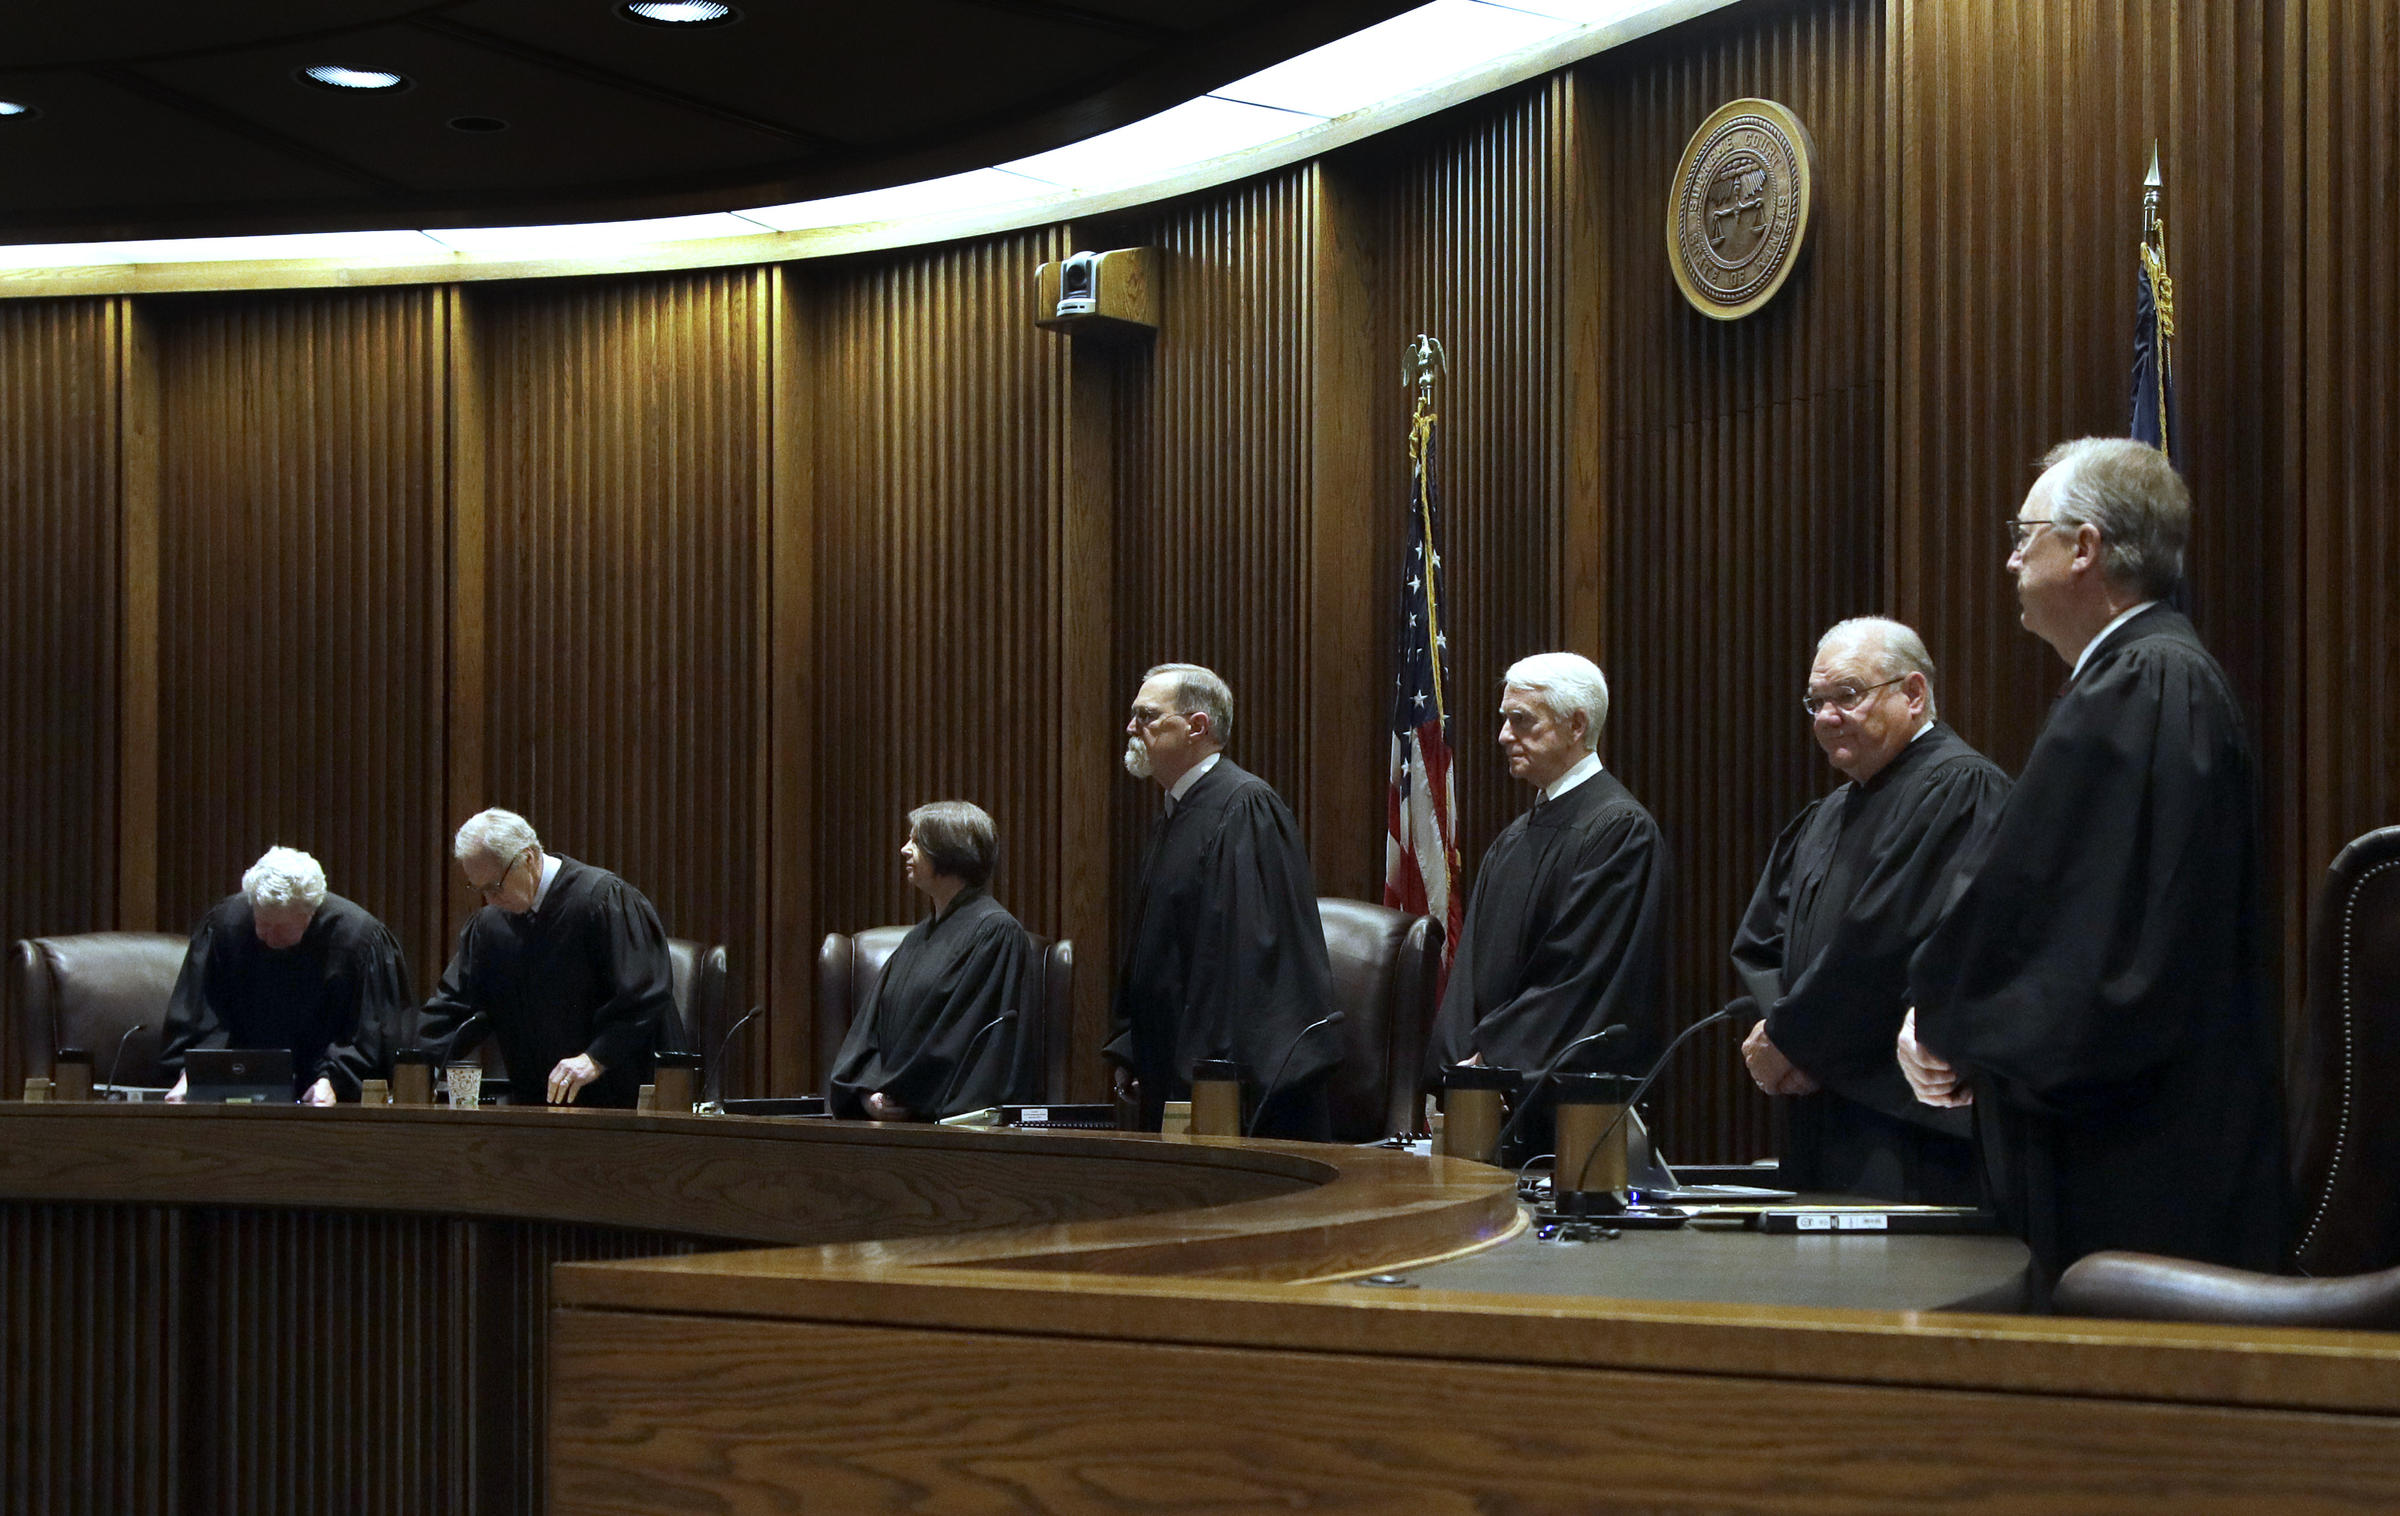 Supreme court inclined to save obamacare as covid